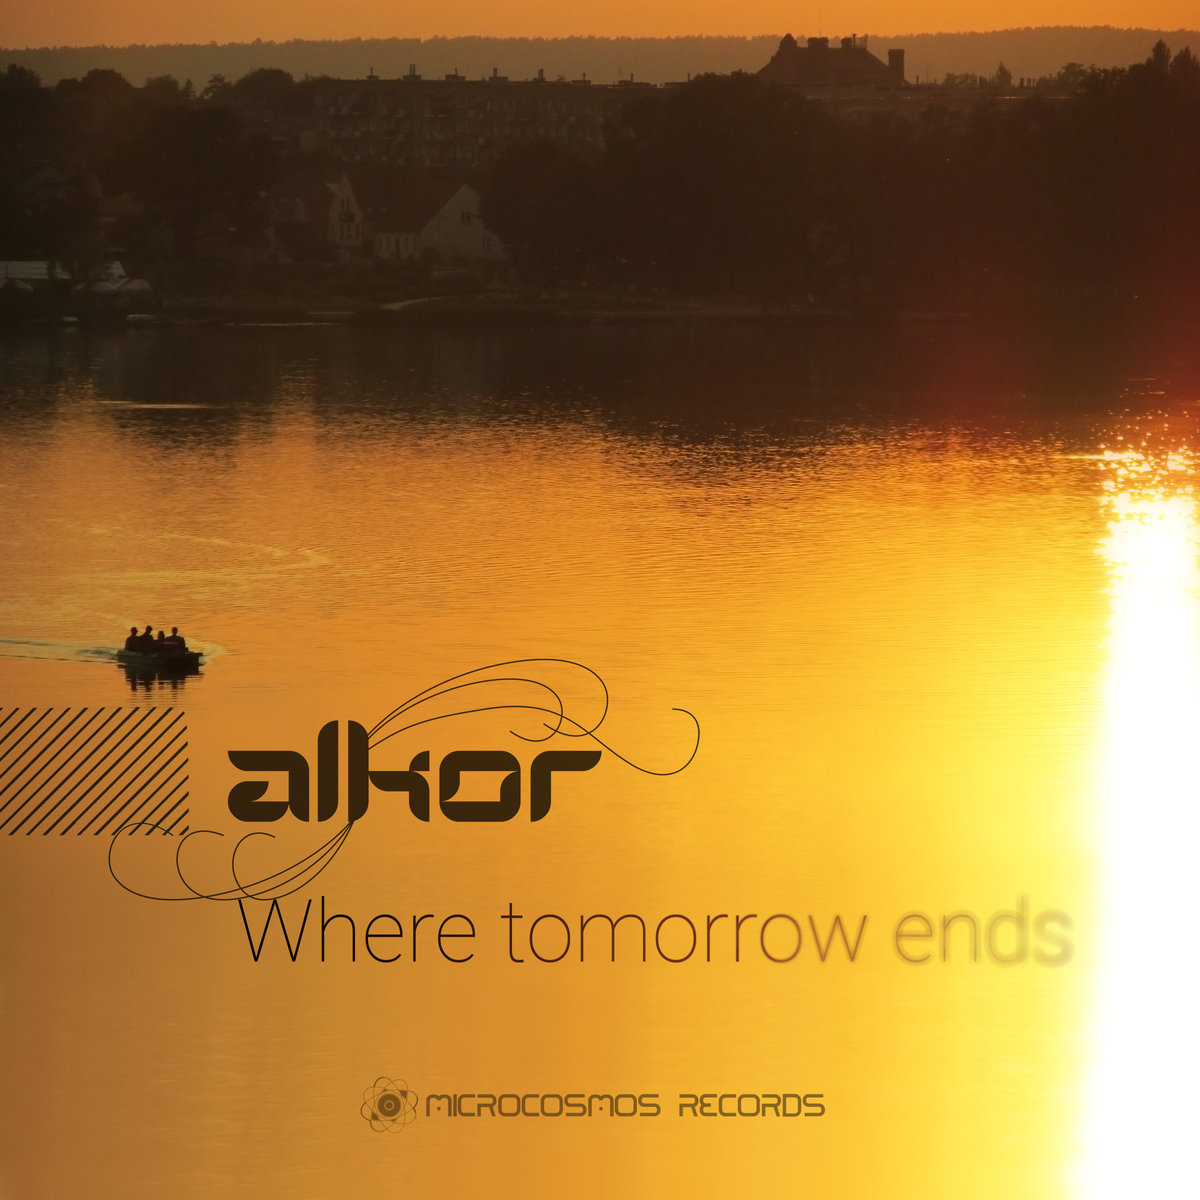 Alkor - Where Tomorrow Ends @ 'Where Tomorrow Ends' album (ambient, chill-out)